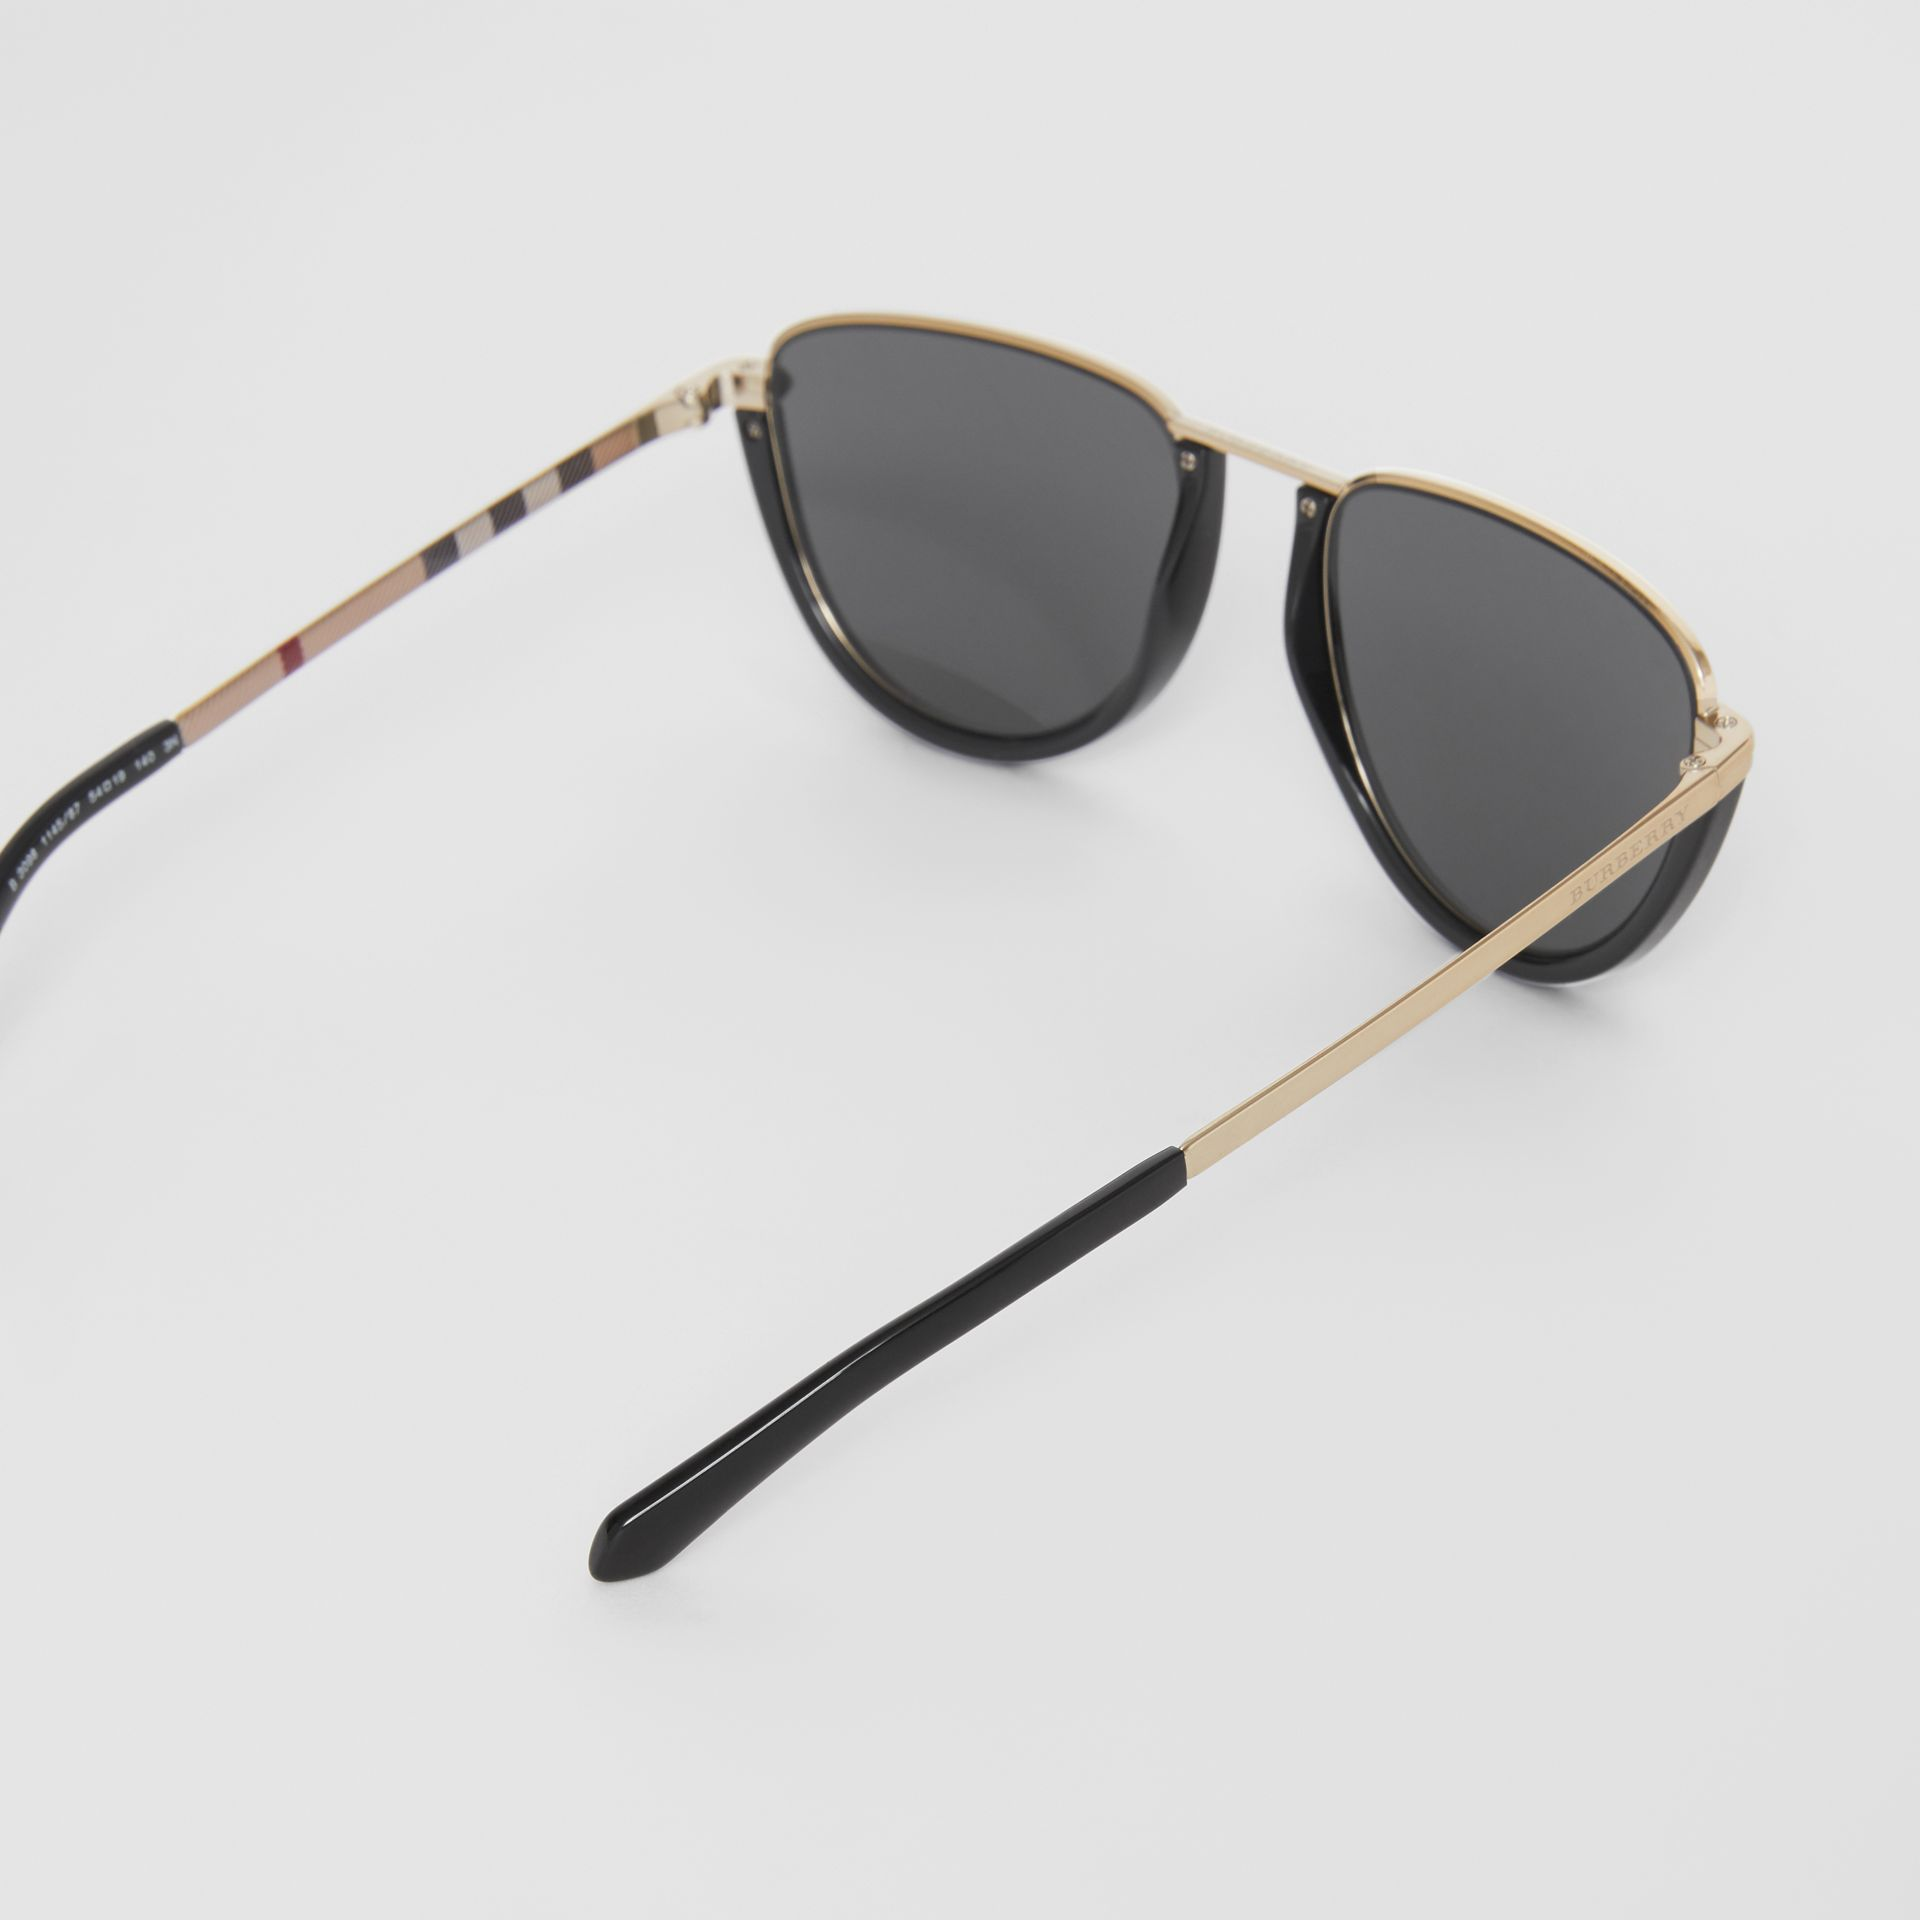 Half Moon Pilot Round Frame Sunglasses in Black - Women | Burberry Australia - gallery image 4